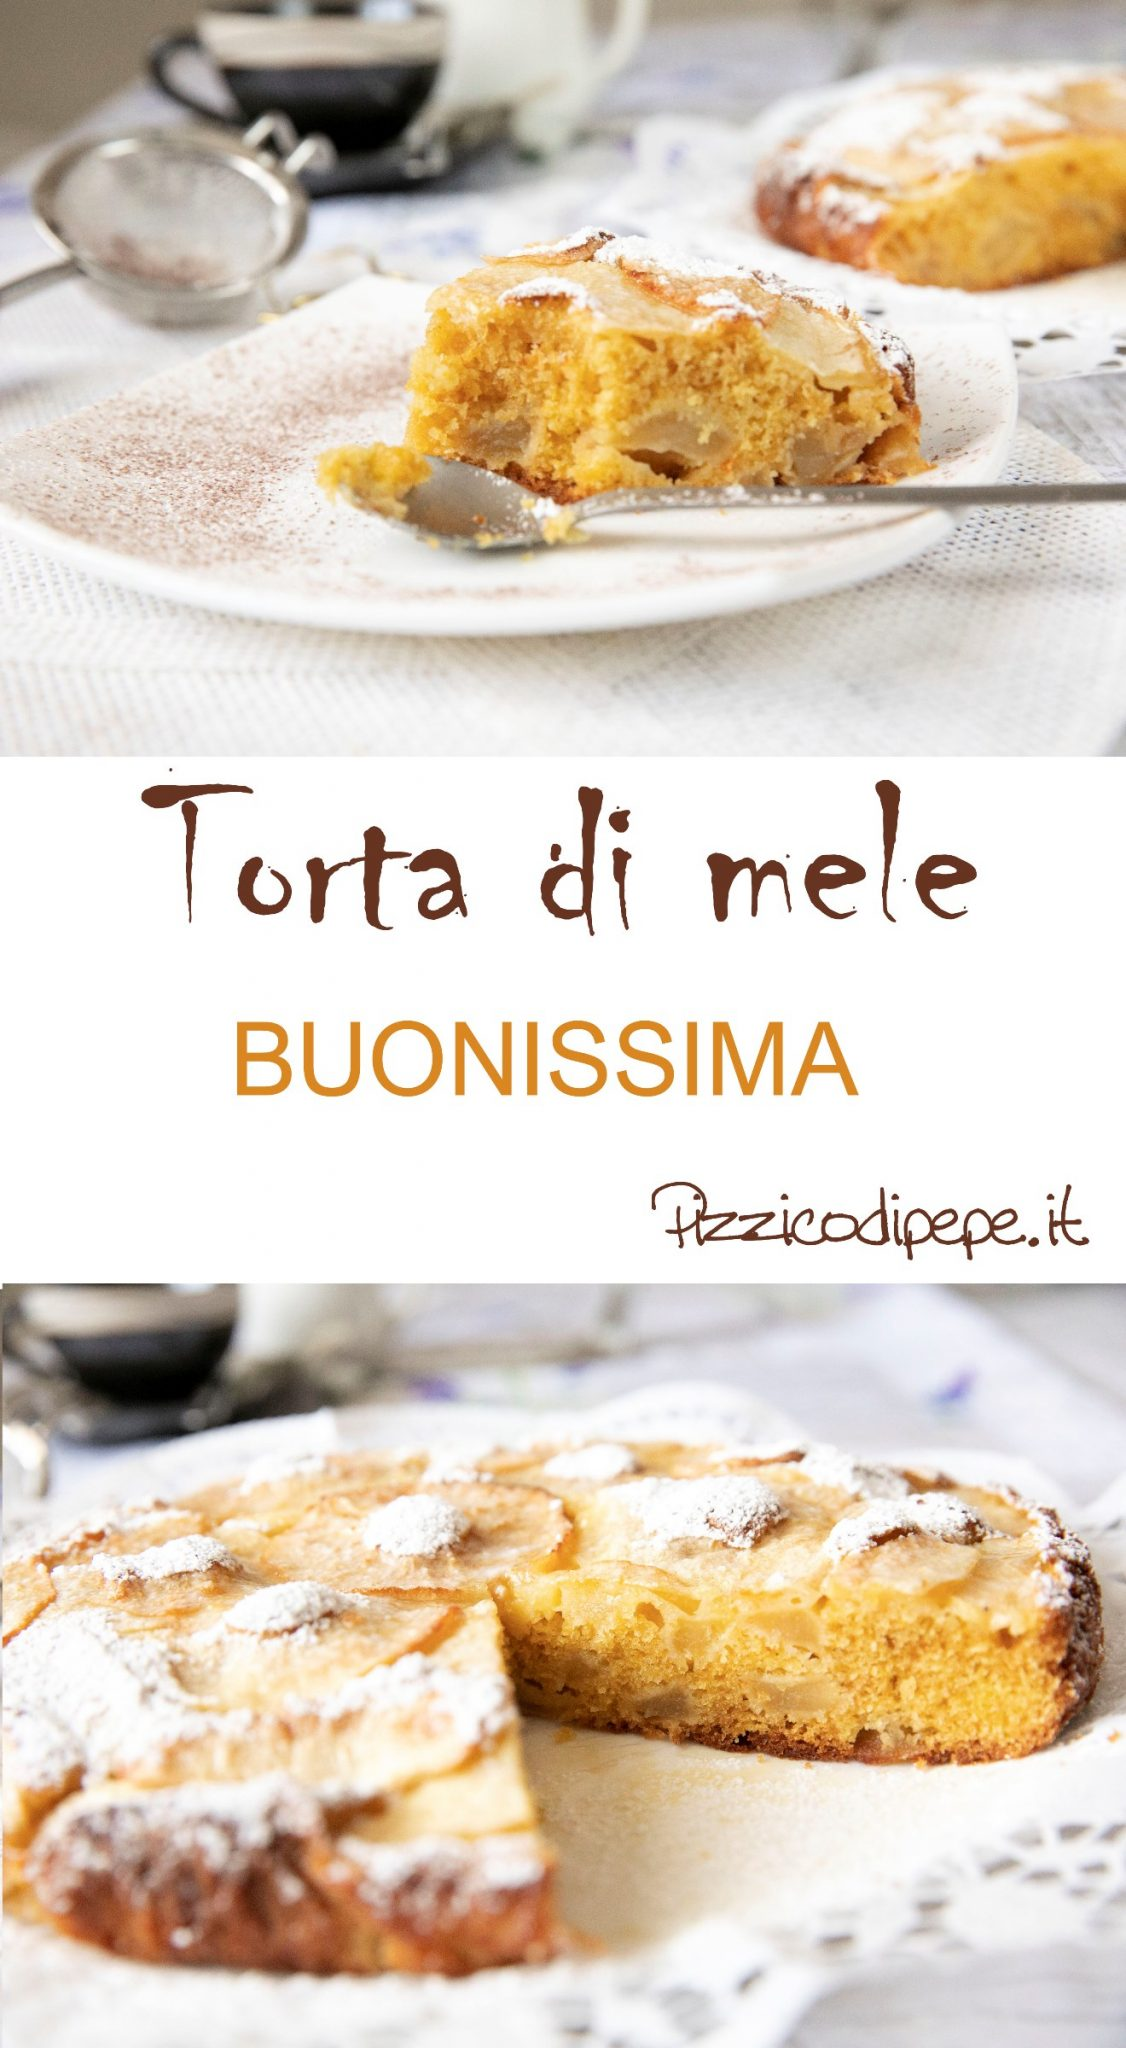 Torta di mele_Pizzicodipepe.it